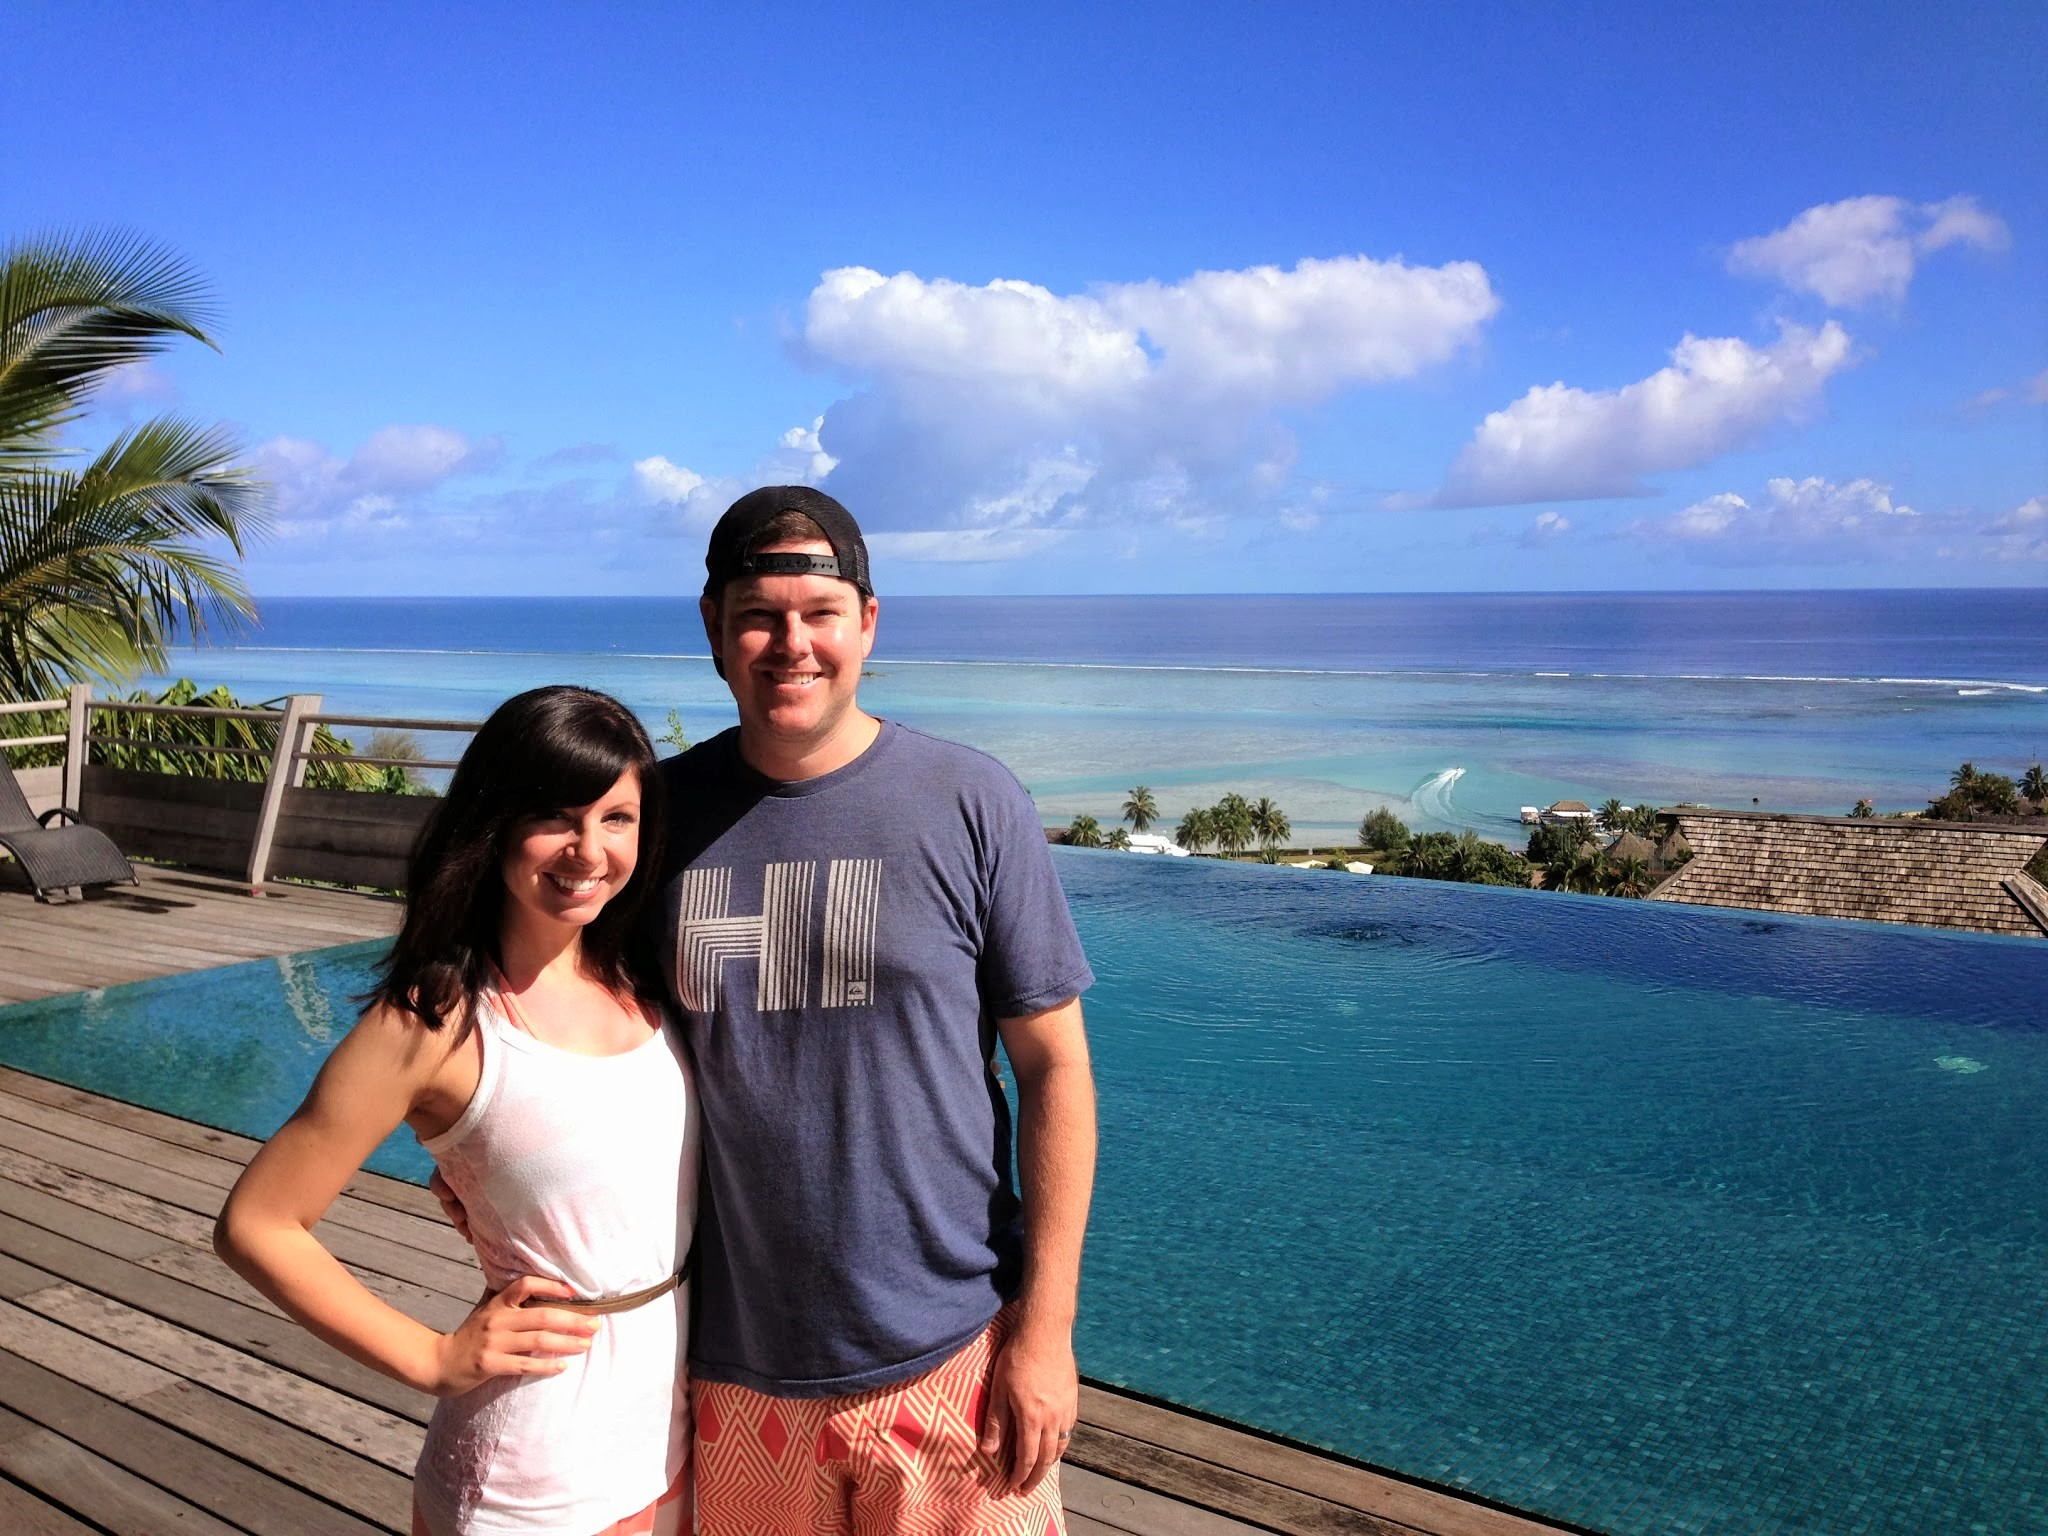 This was the view from the pool at Legends. We snapped it right before heading to the airport and onto Bora Bora!